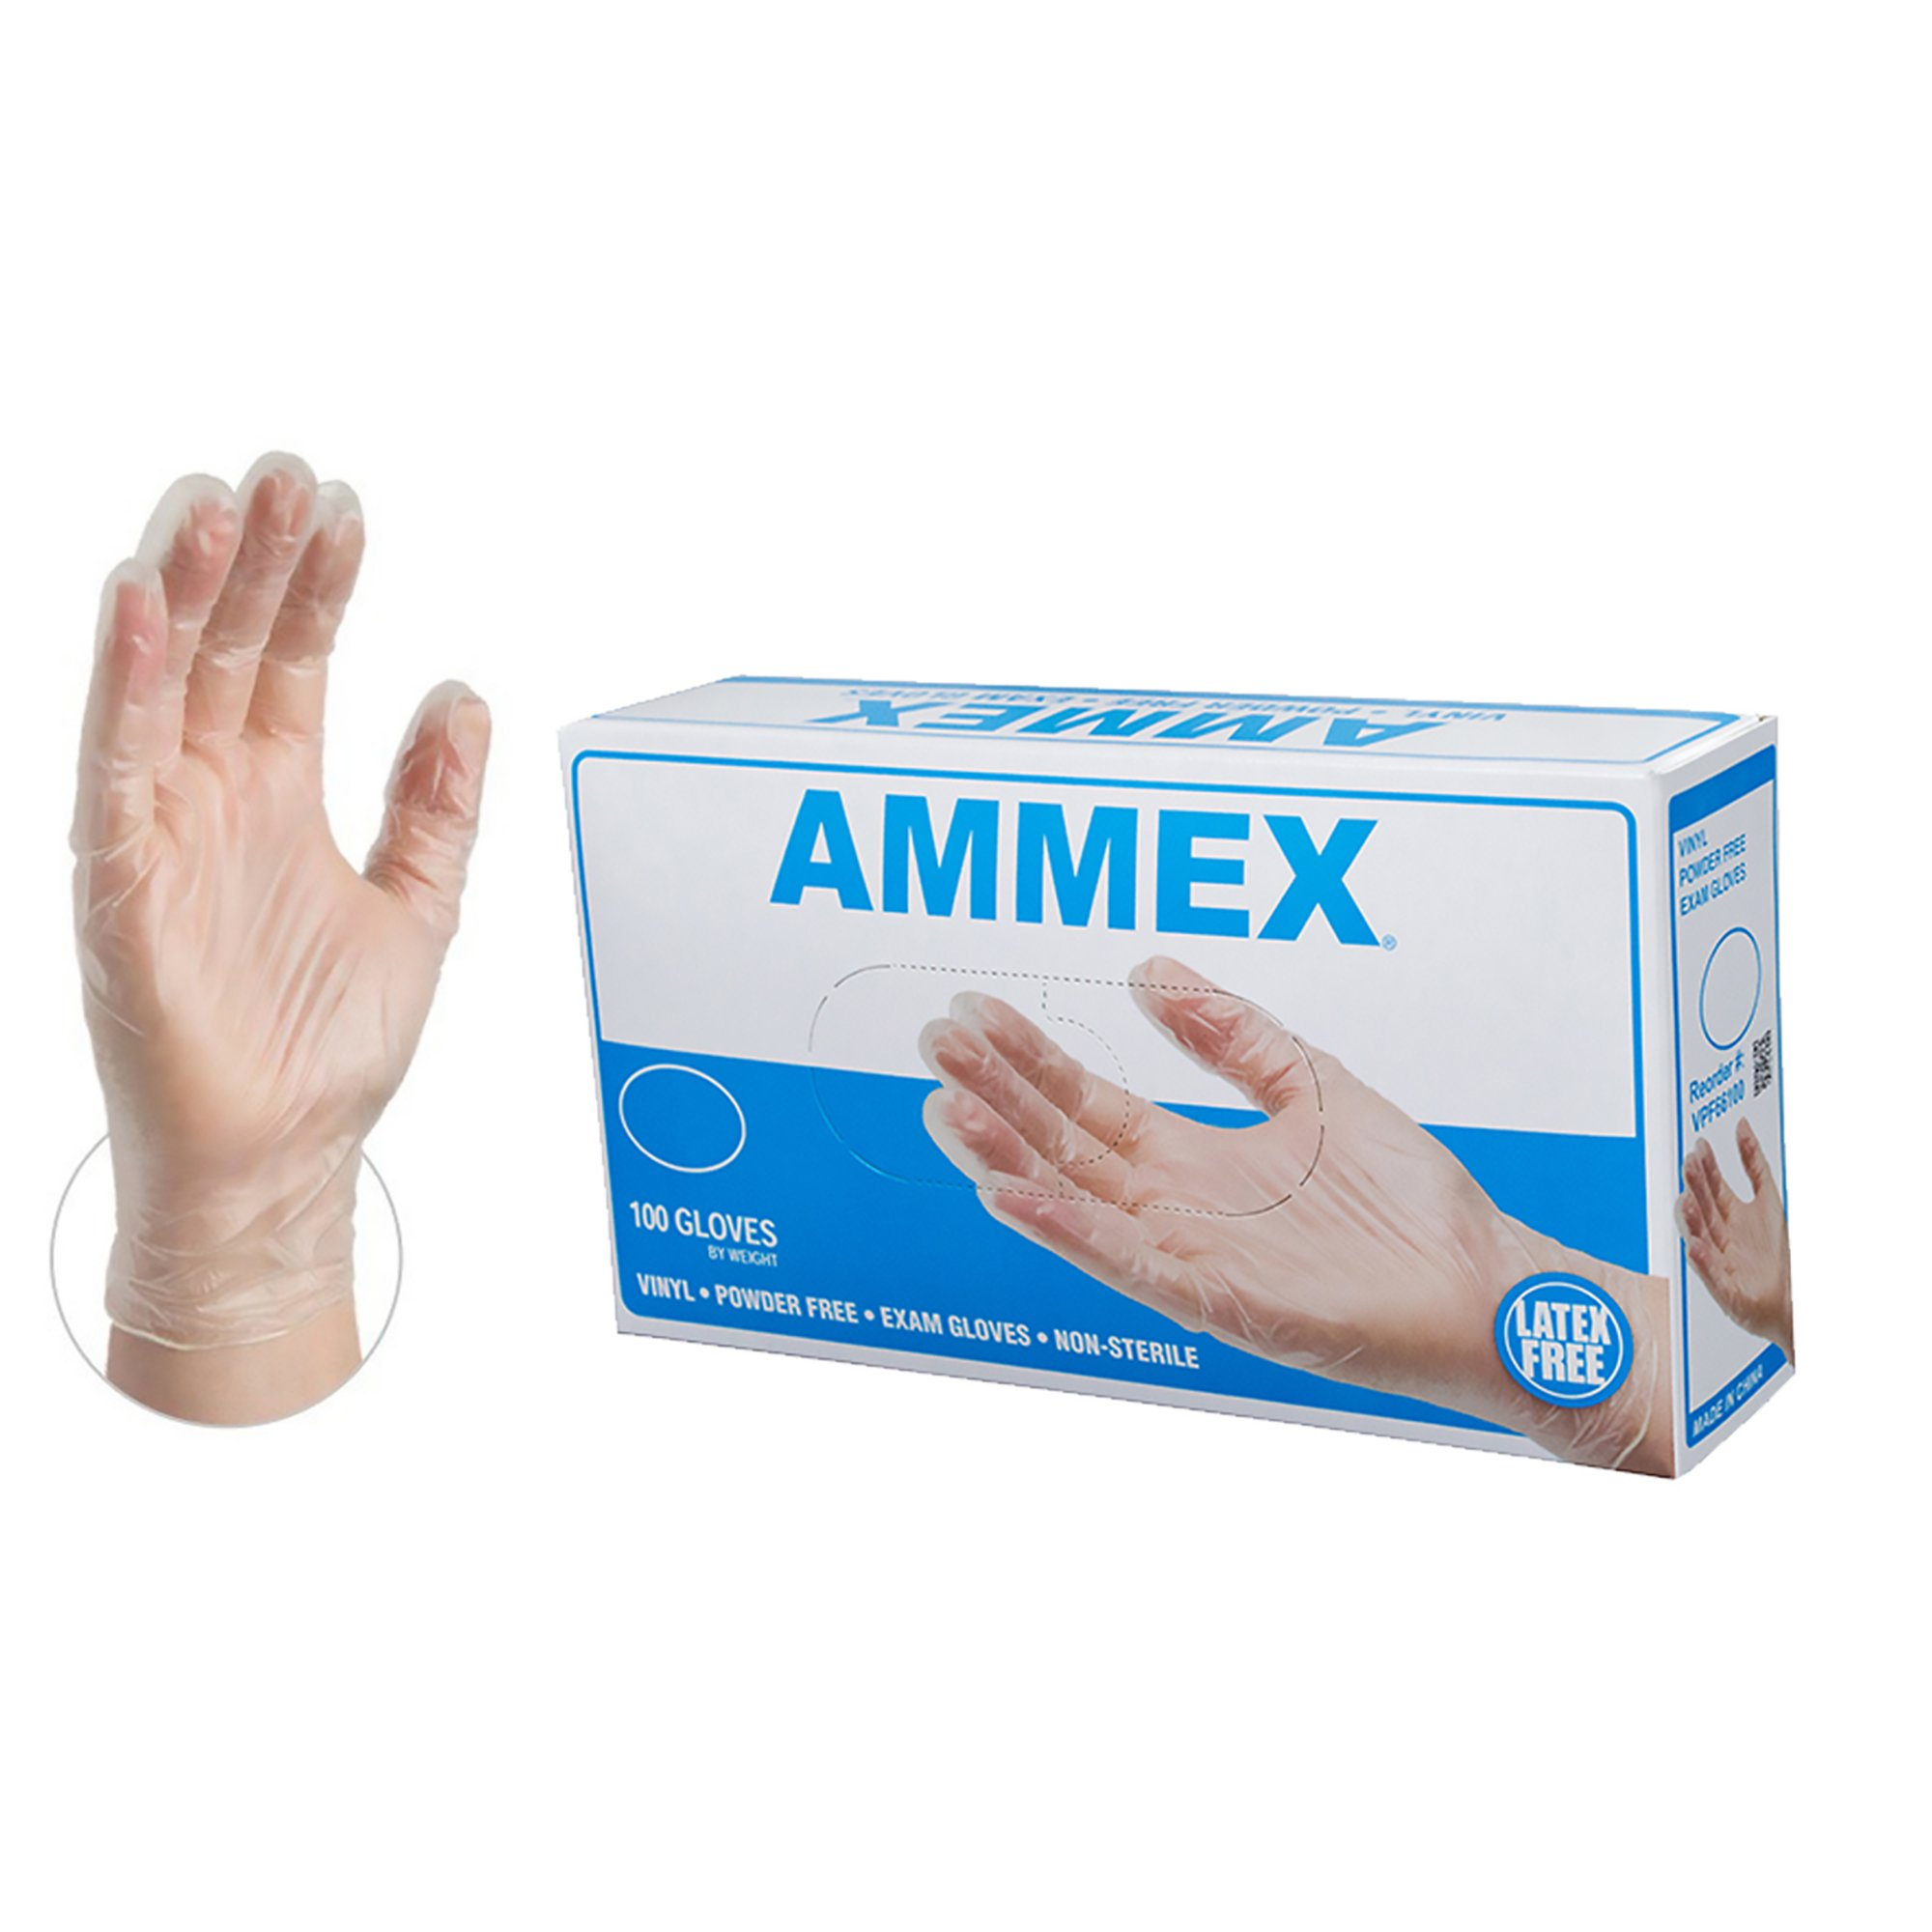 AMMEX Medical Clear Vinyl Gloves -  4 mil, Latex Free, Powder Free, Disposable, Non-Sterile, Medium, VPF64100, Case of 1000 by Ammex